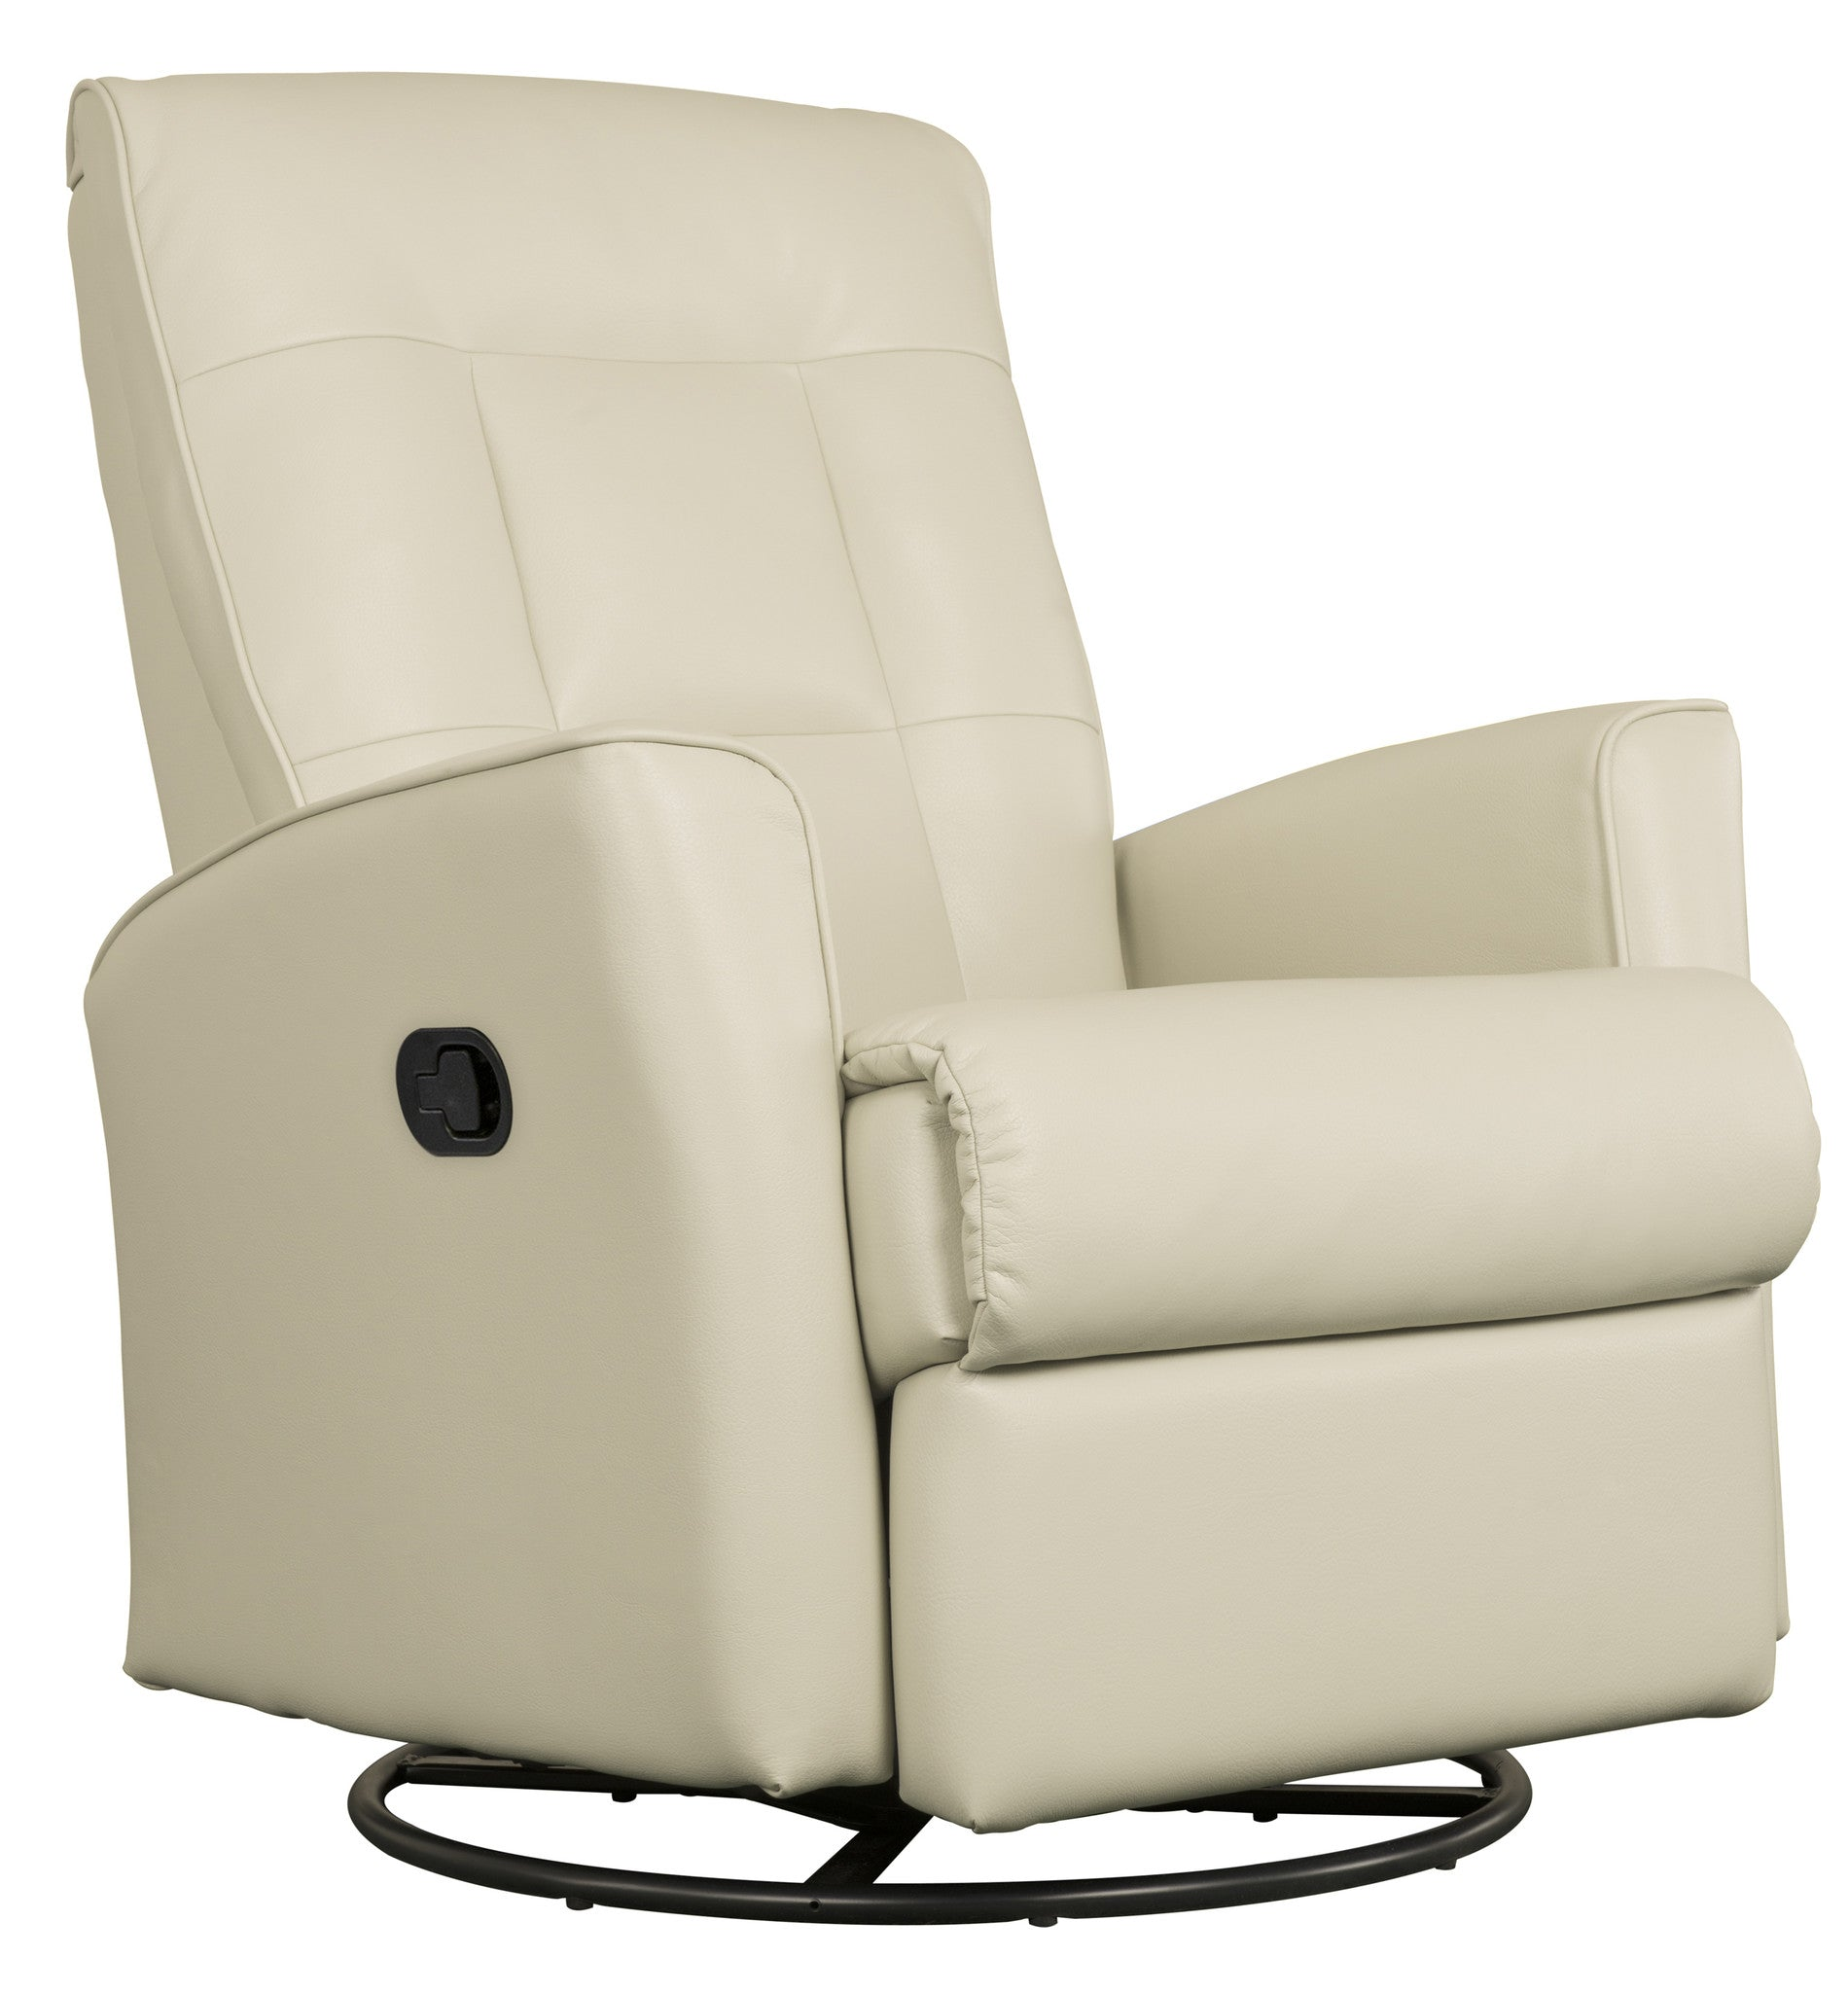 headrest h chairs lift s and chair with tepperman power w layflat recliners recliner oasis usb